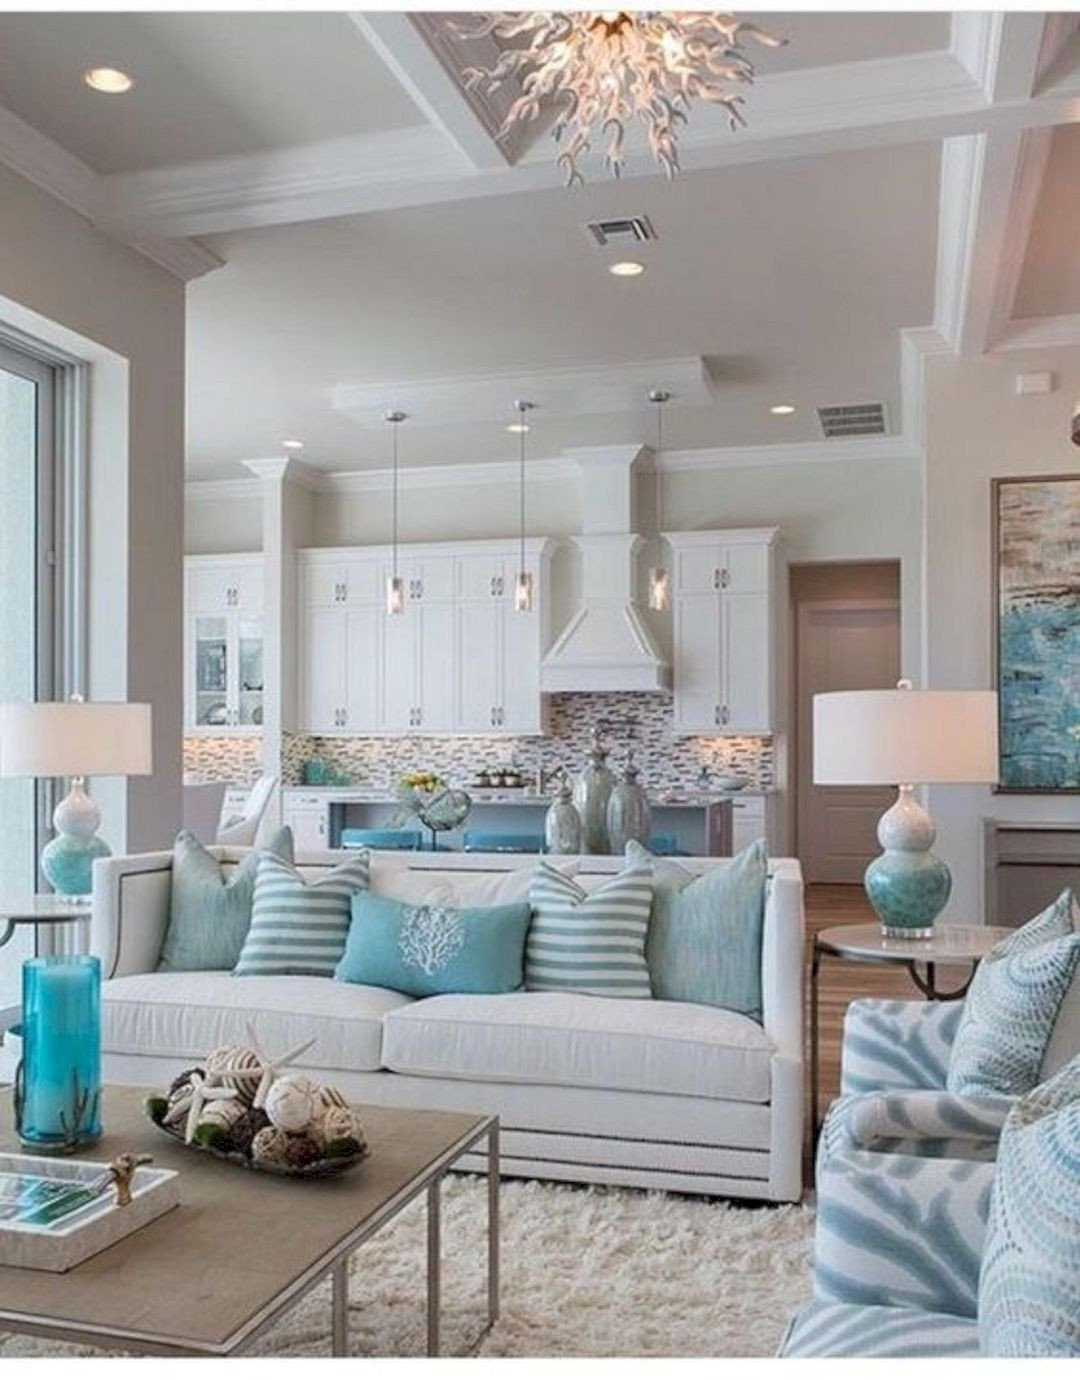 Beach themed Living Room Decor 16 Refreshing Home Decoration Ideas to Bring Out Coastal